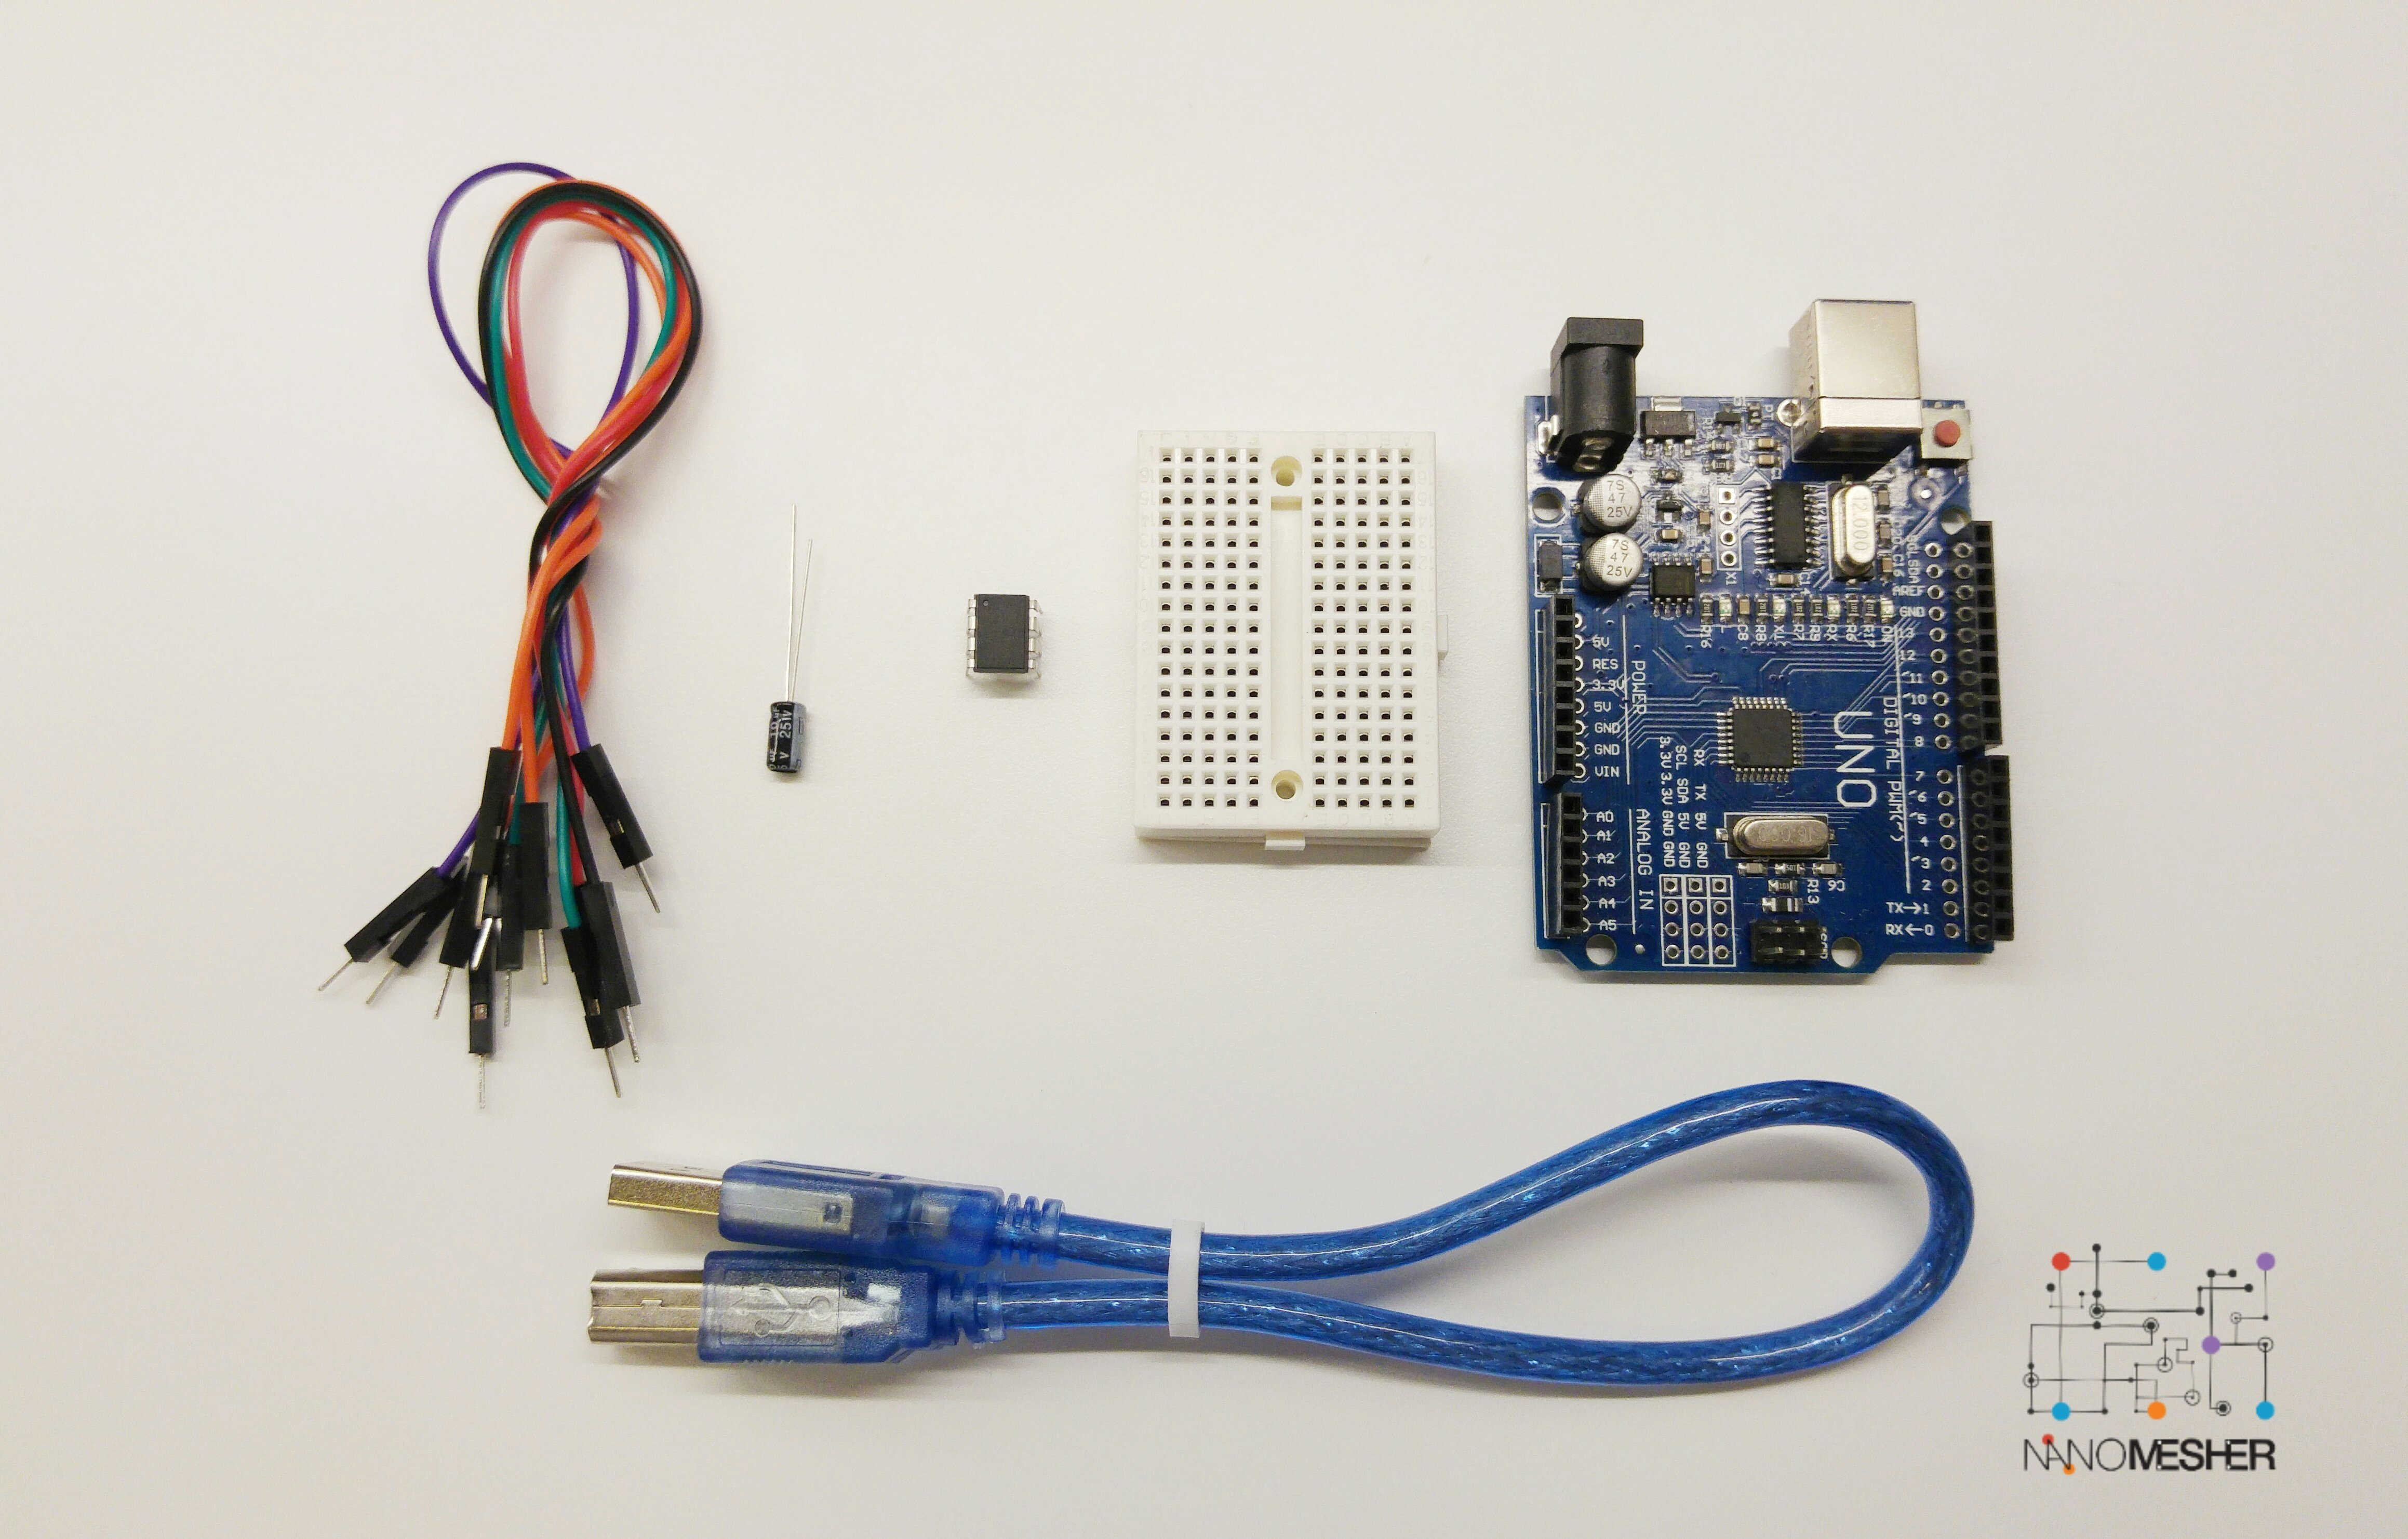 Attiny Microcontroller Programmer Kit including Arduino Uno & Attiny85 APROMM